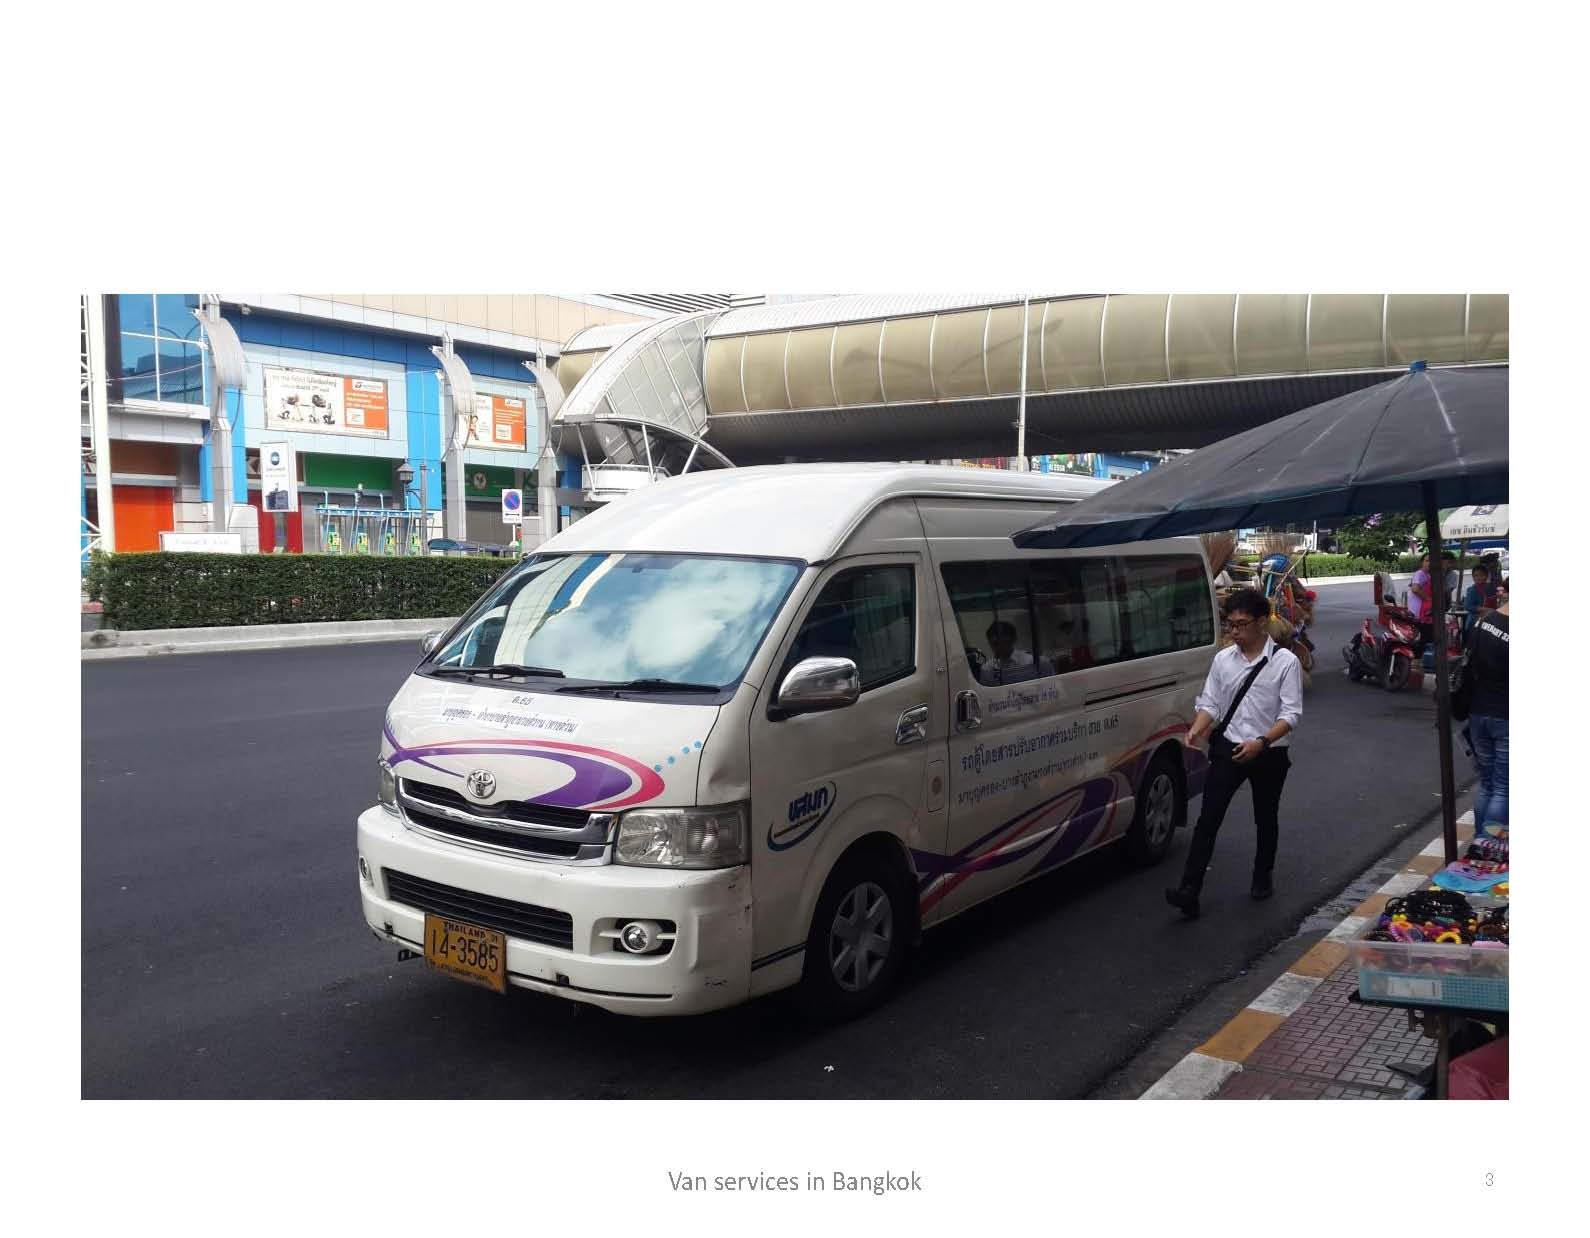 Market and Institutional Characteristics of Passenger Van Services